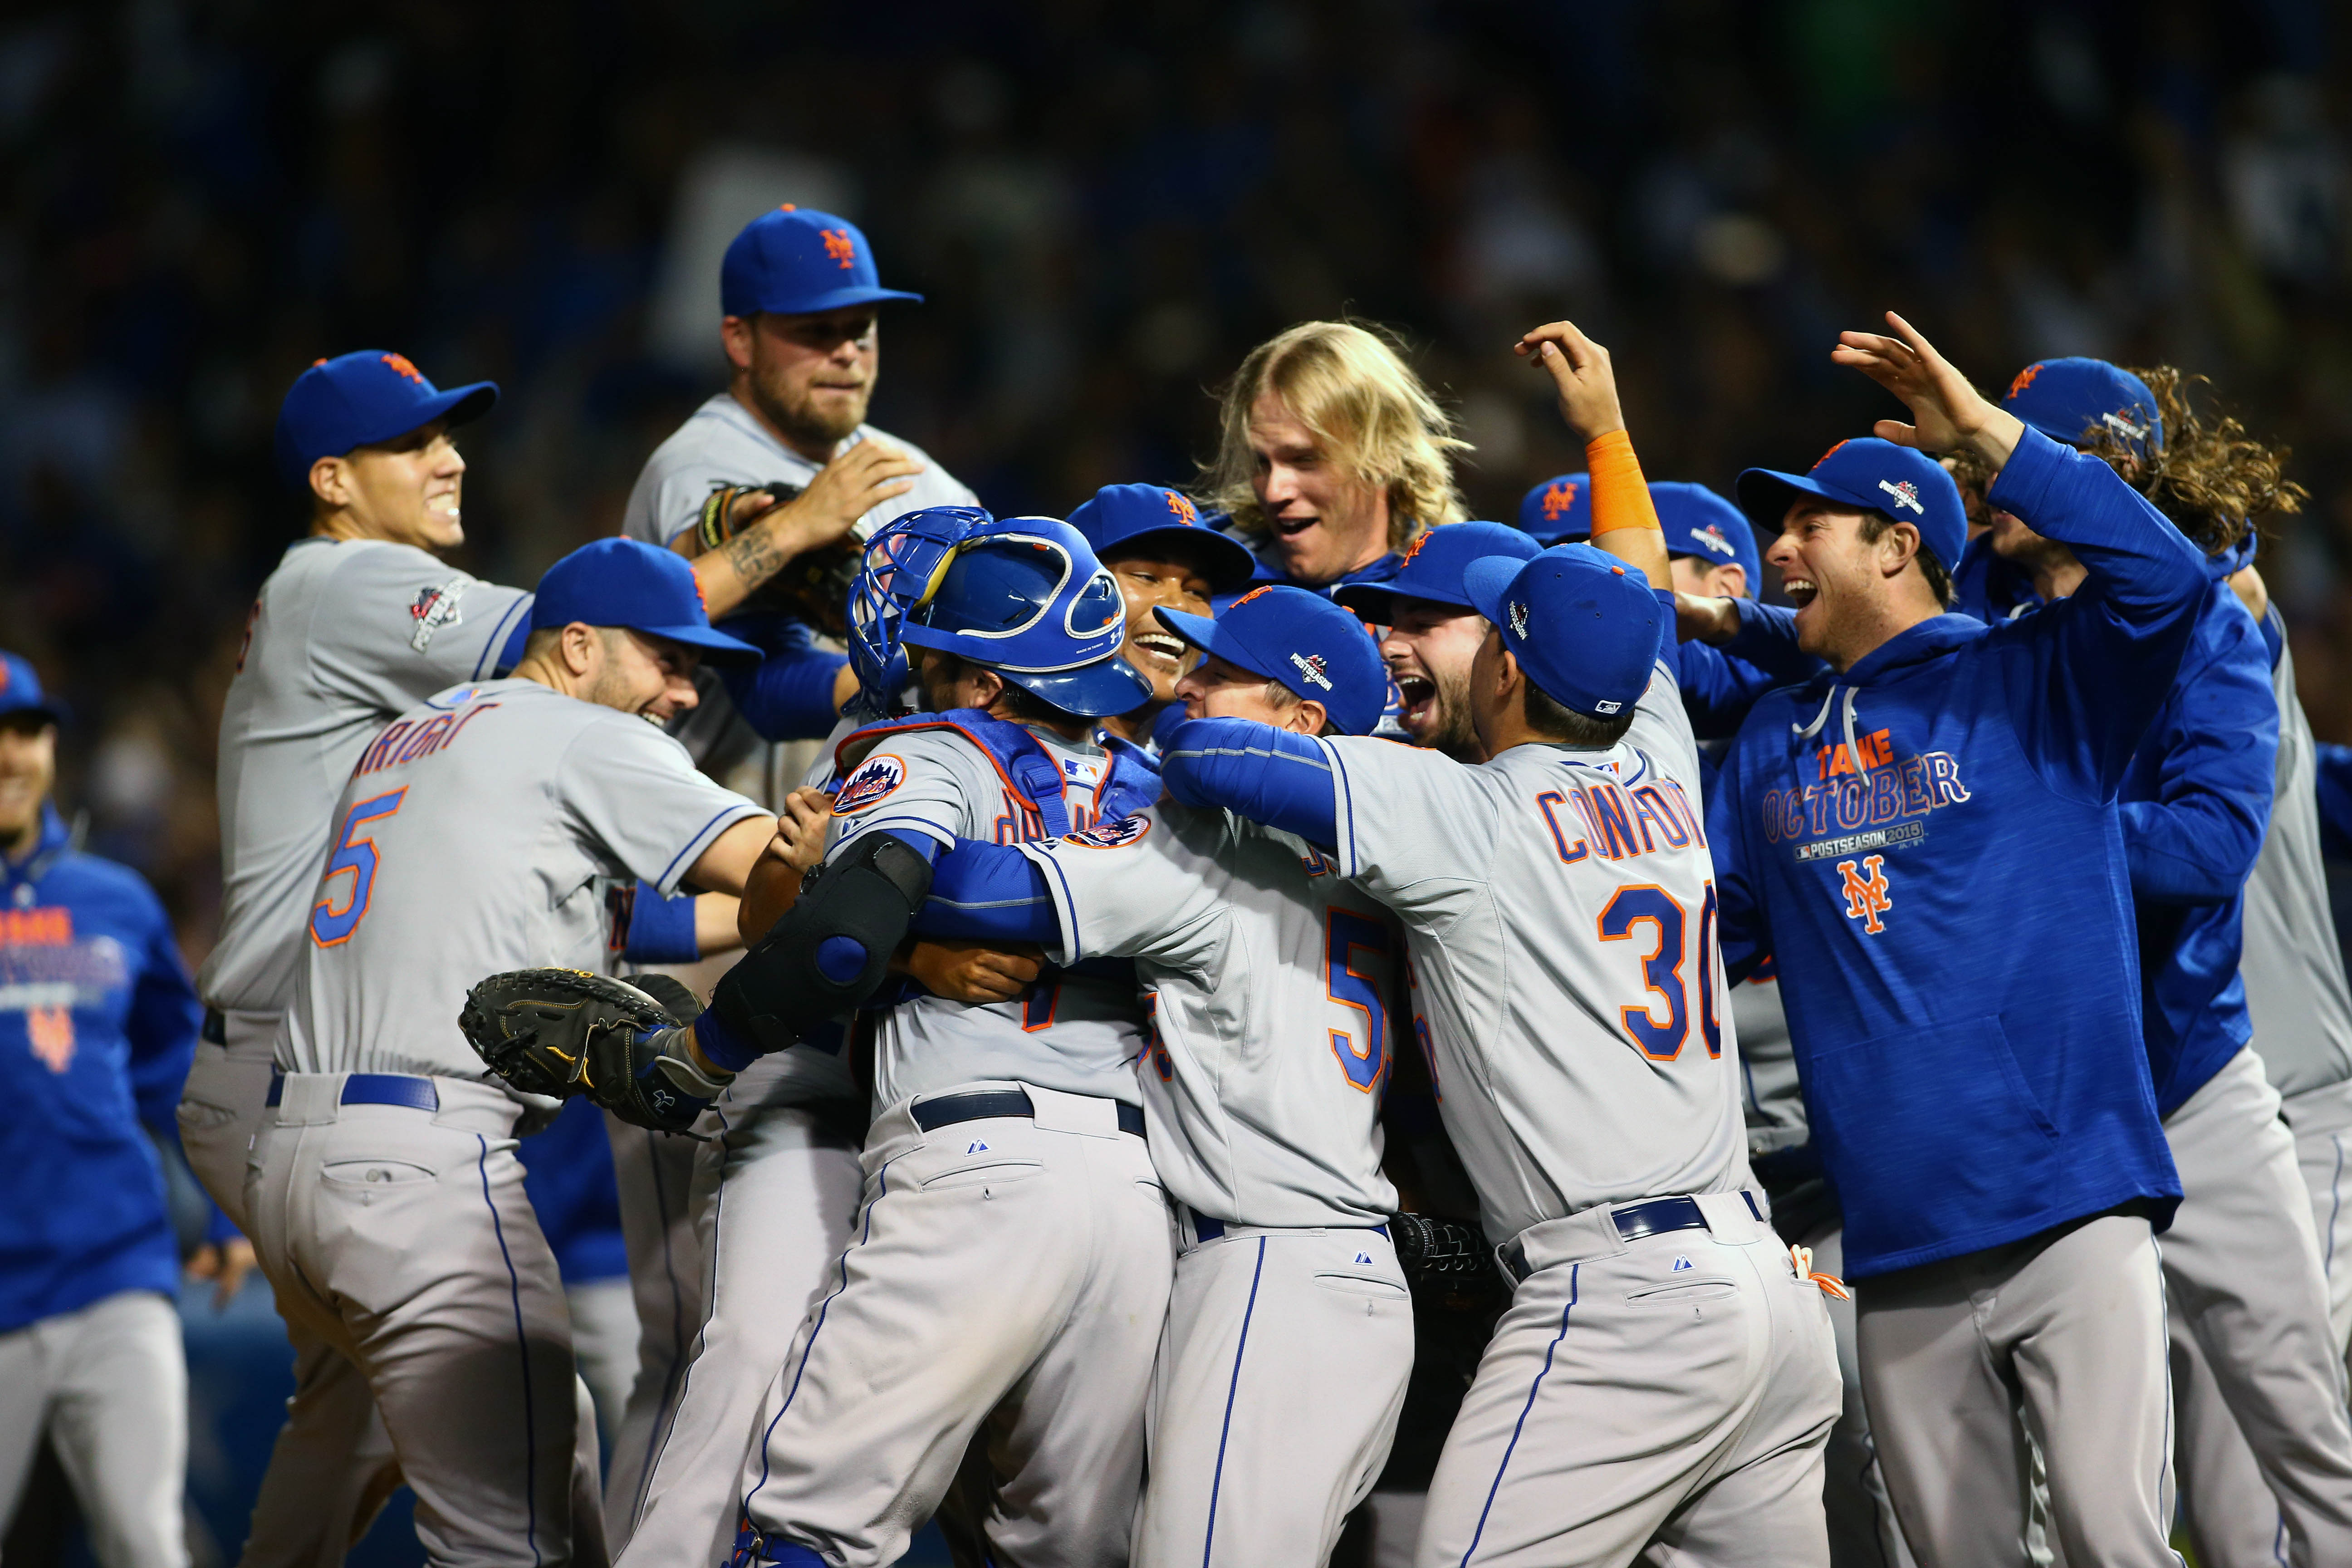 ffb52f7a8e8 New York Mets sweep Chicago Cubs